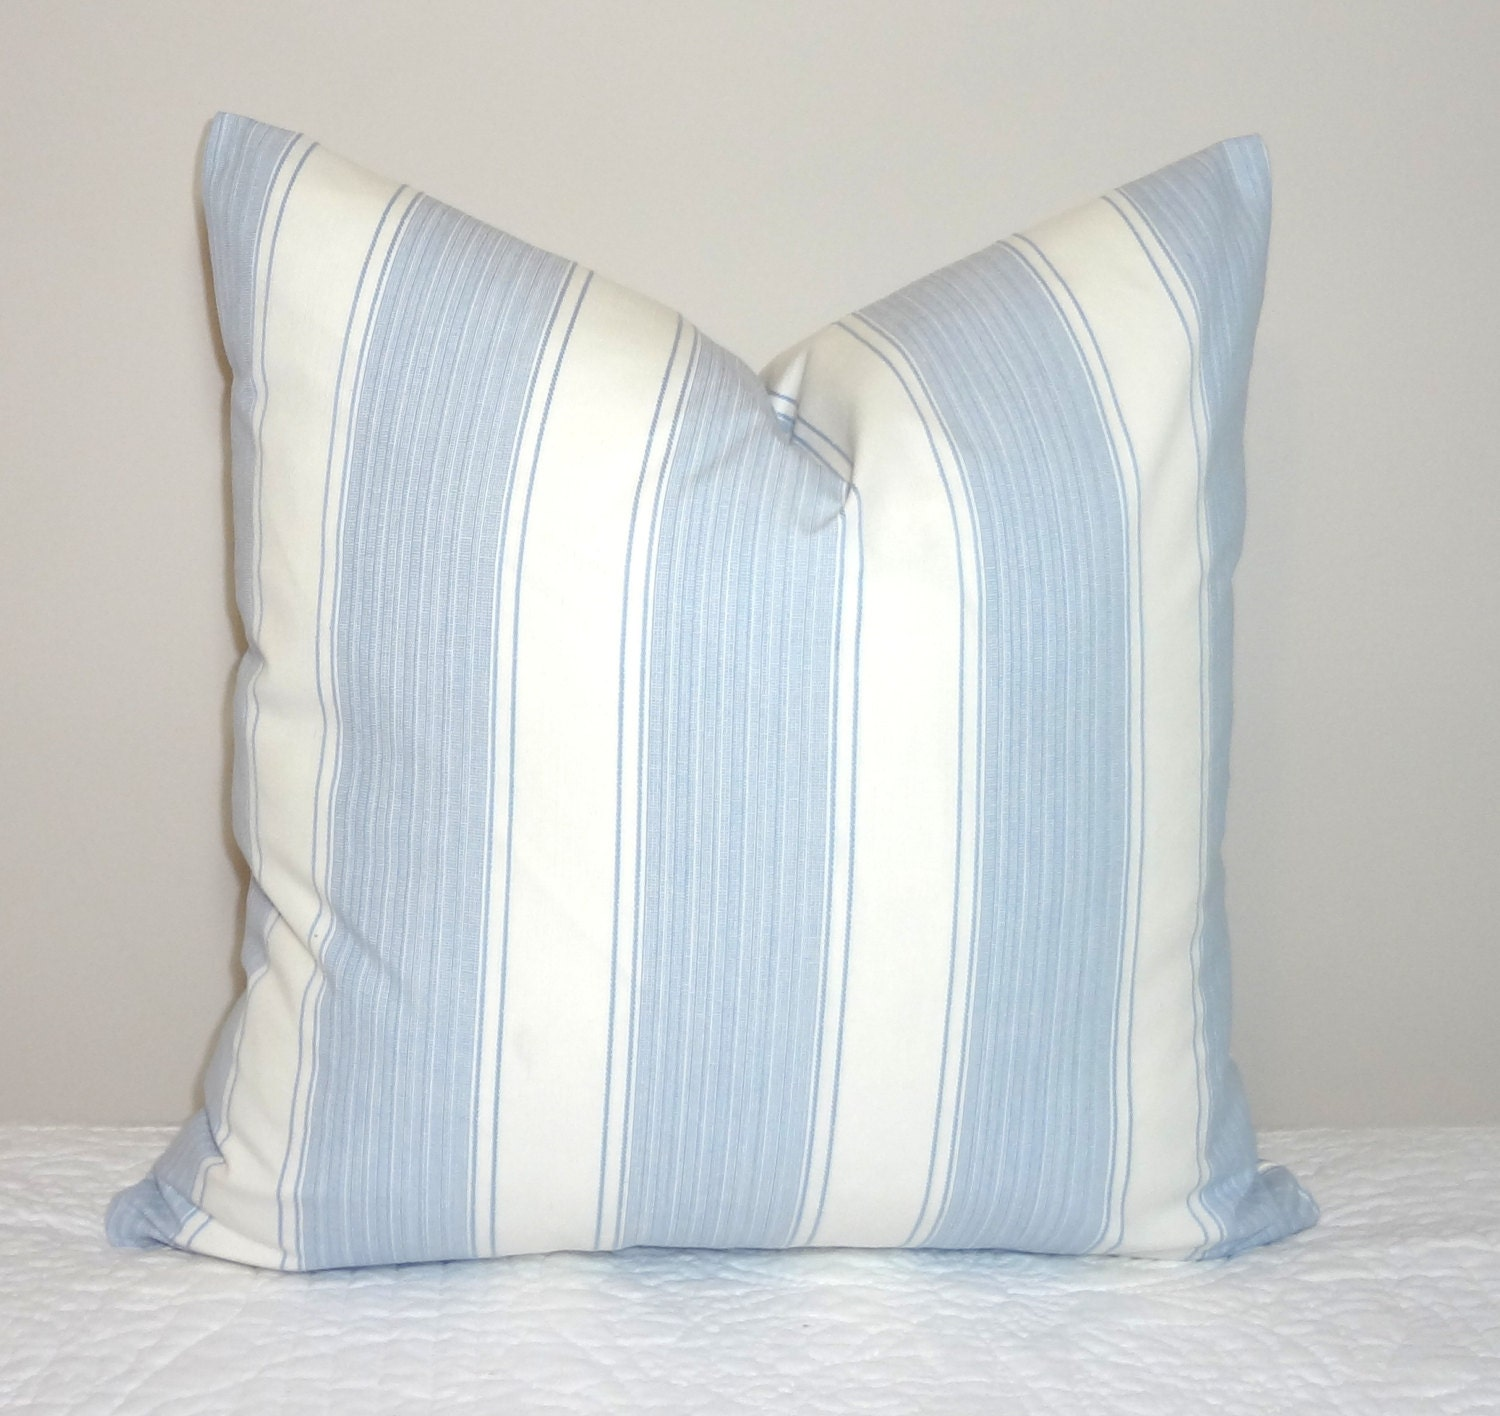 Blue Striped Throw Pillow Cover : Decorative Blue/White Stripe Pillow Cover Blue & White Striped